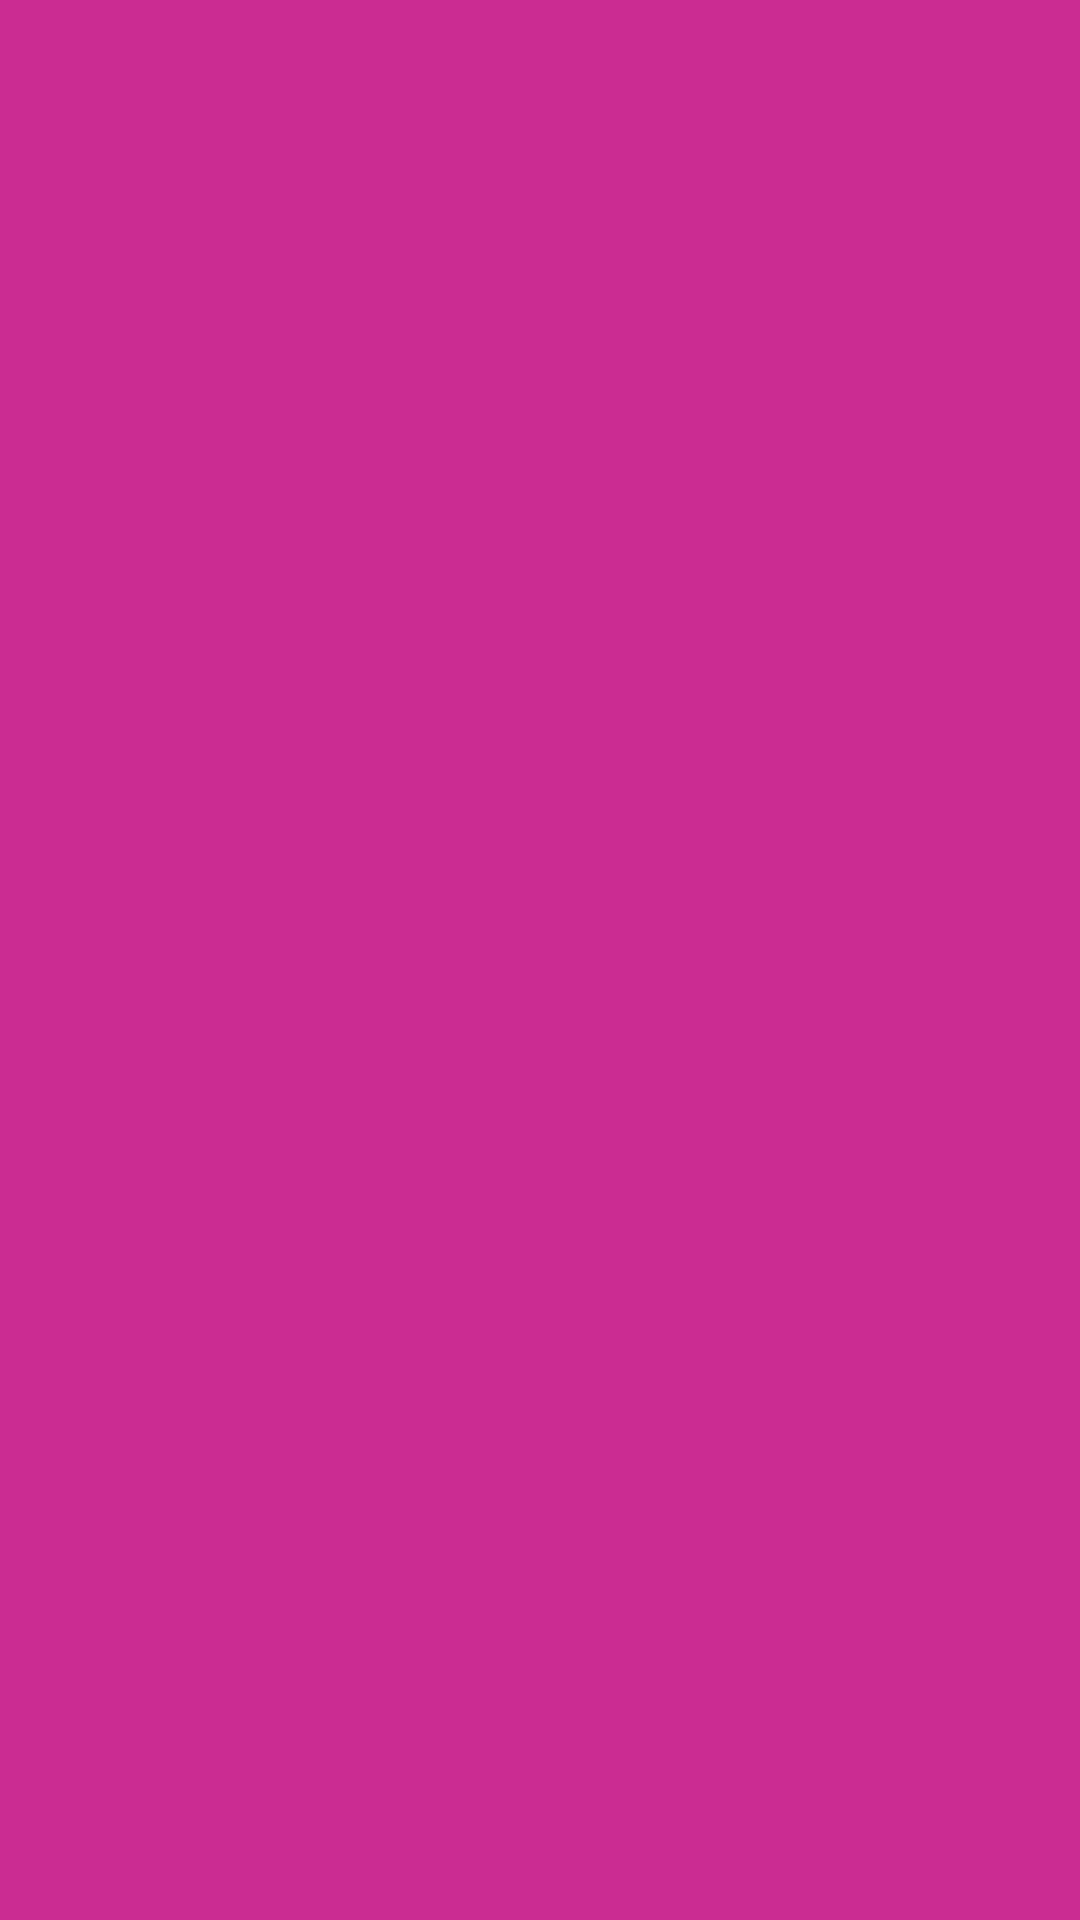 1080x1920 Royal Fuchsia Solid Color Background